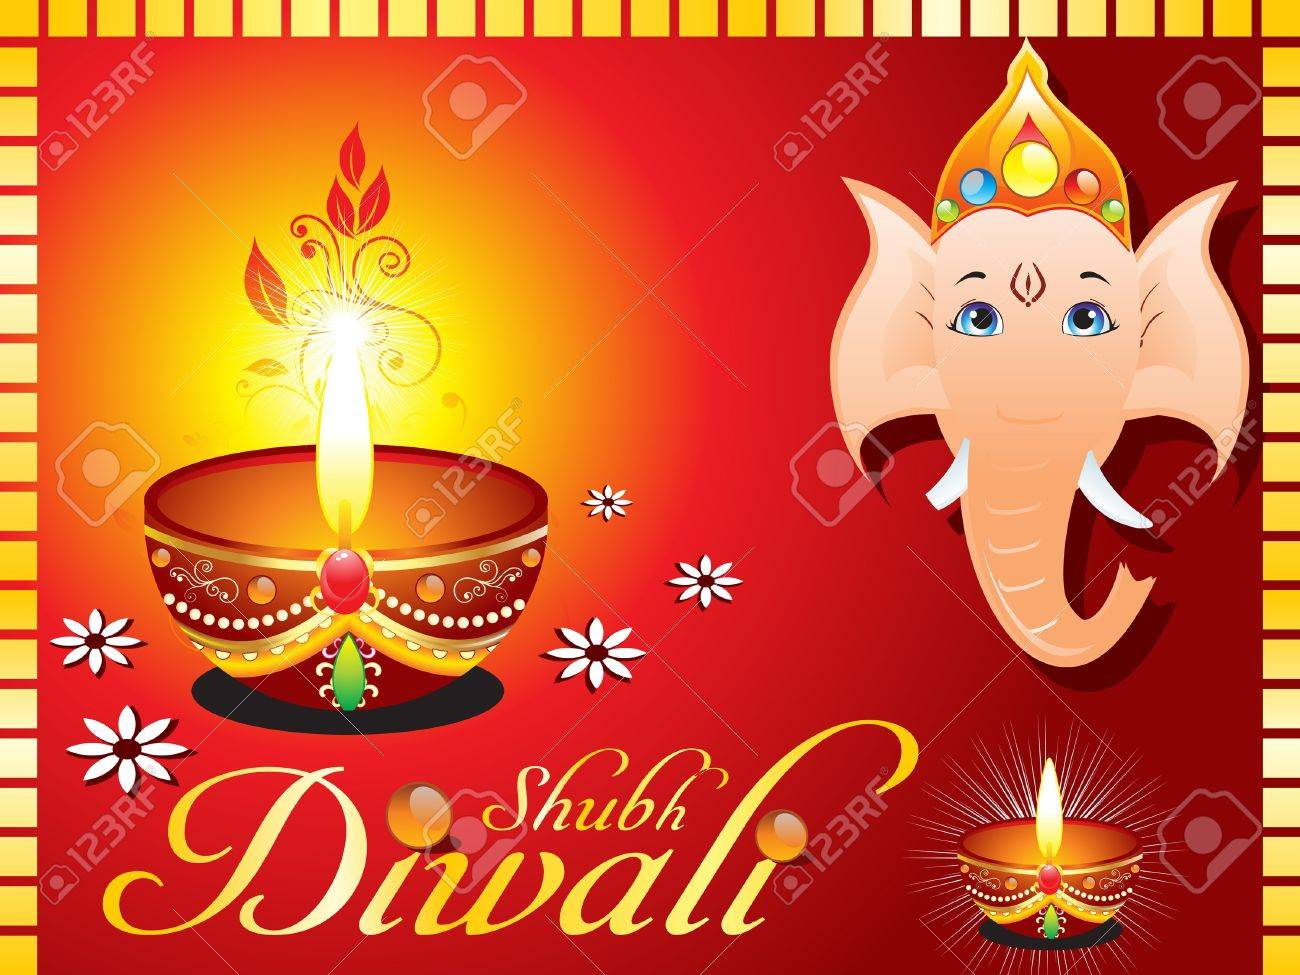 Abstract diwali greeting card with ganesh ji vector illustration abstract diwali greeting card with ganesh ji vector illustration stock vector 10998654 kristyandbryce Image collections